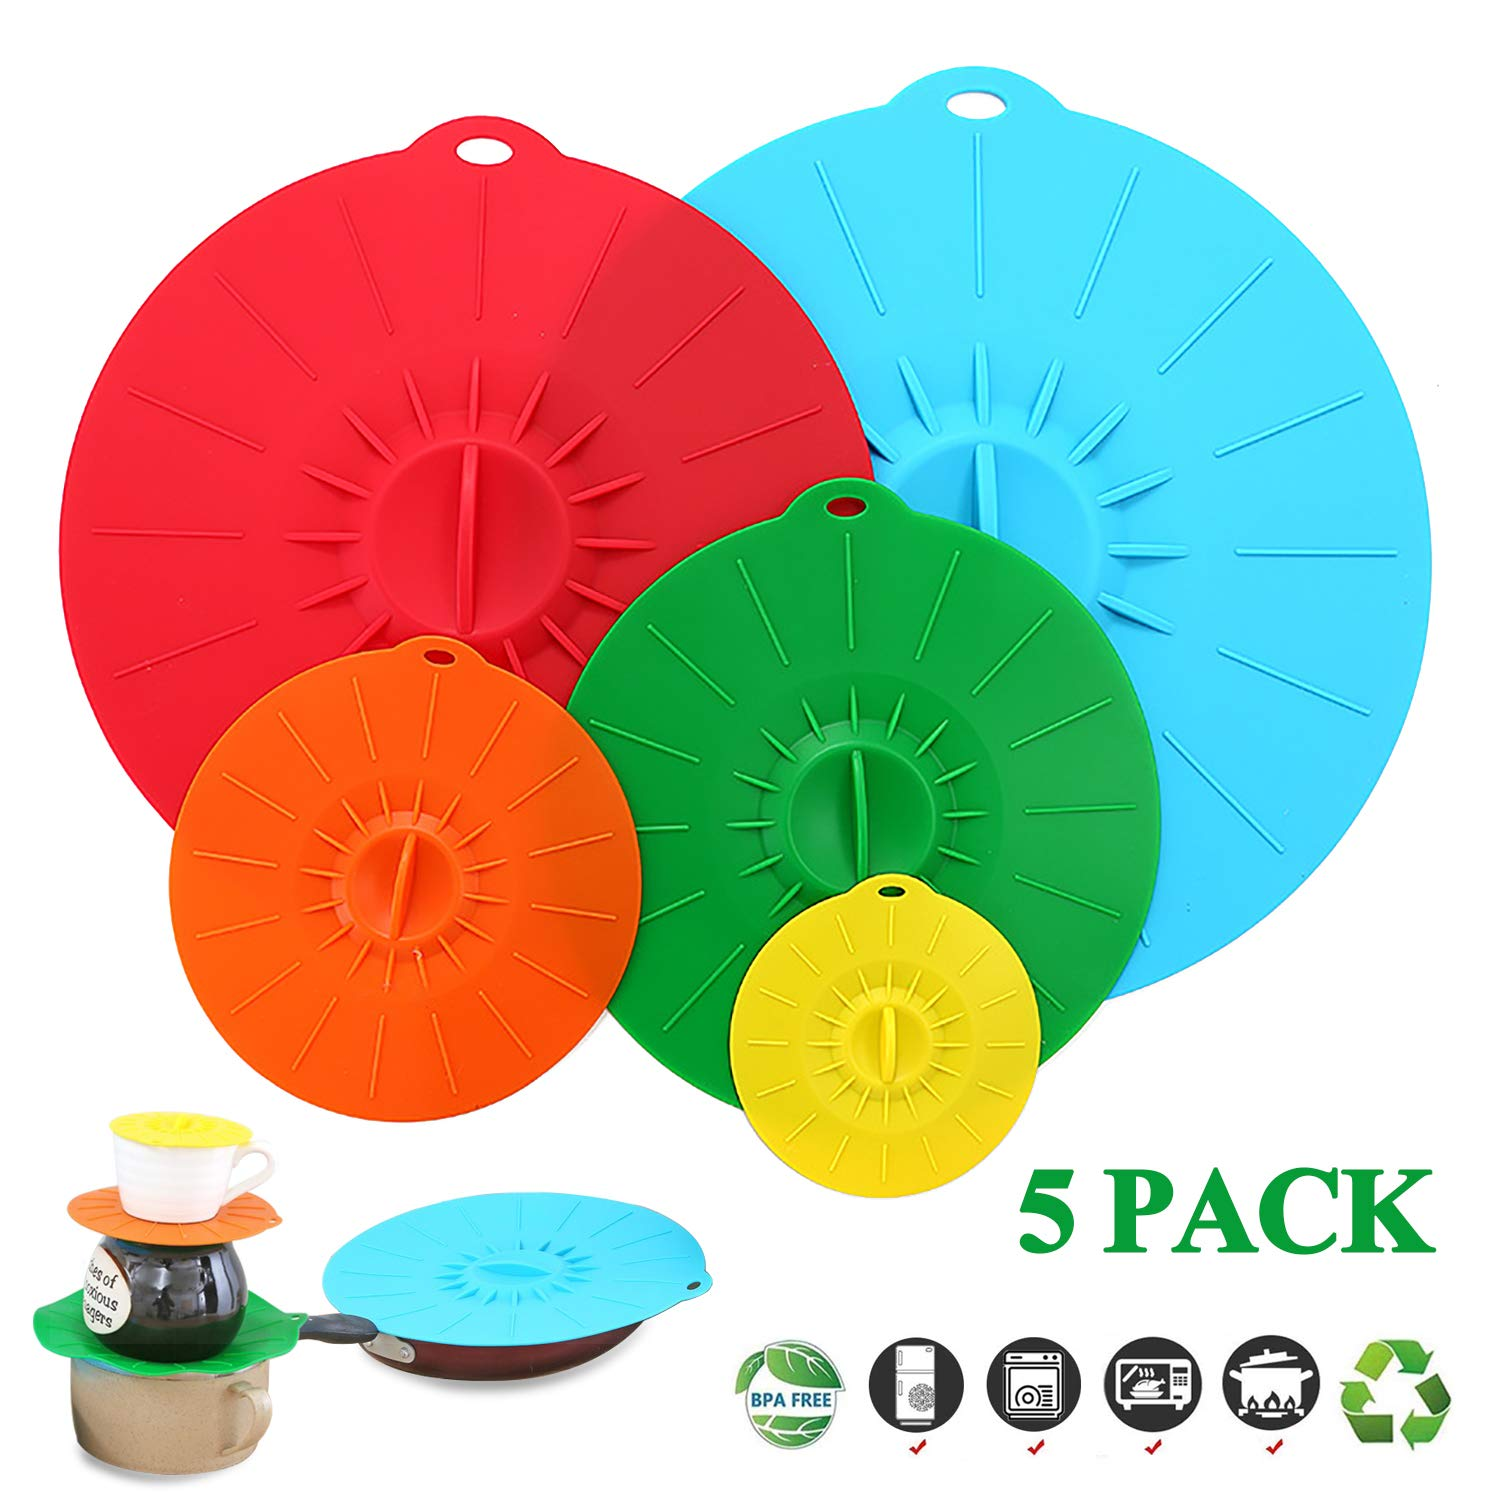 "Adpartner Silicone Suction Lids, Set of 5 Colorful Food Covers for Bowls Pots Pans Mugs - BPA-Free Leak-proof Containers Cover, Microwave and Dishwasher Safe - Diameter 4"" 6"" 8"" 10"" 12"""